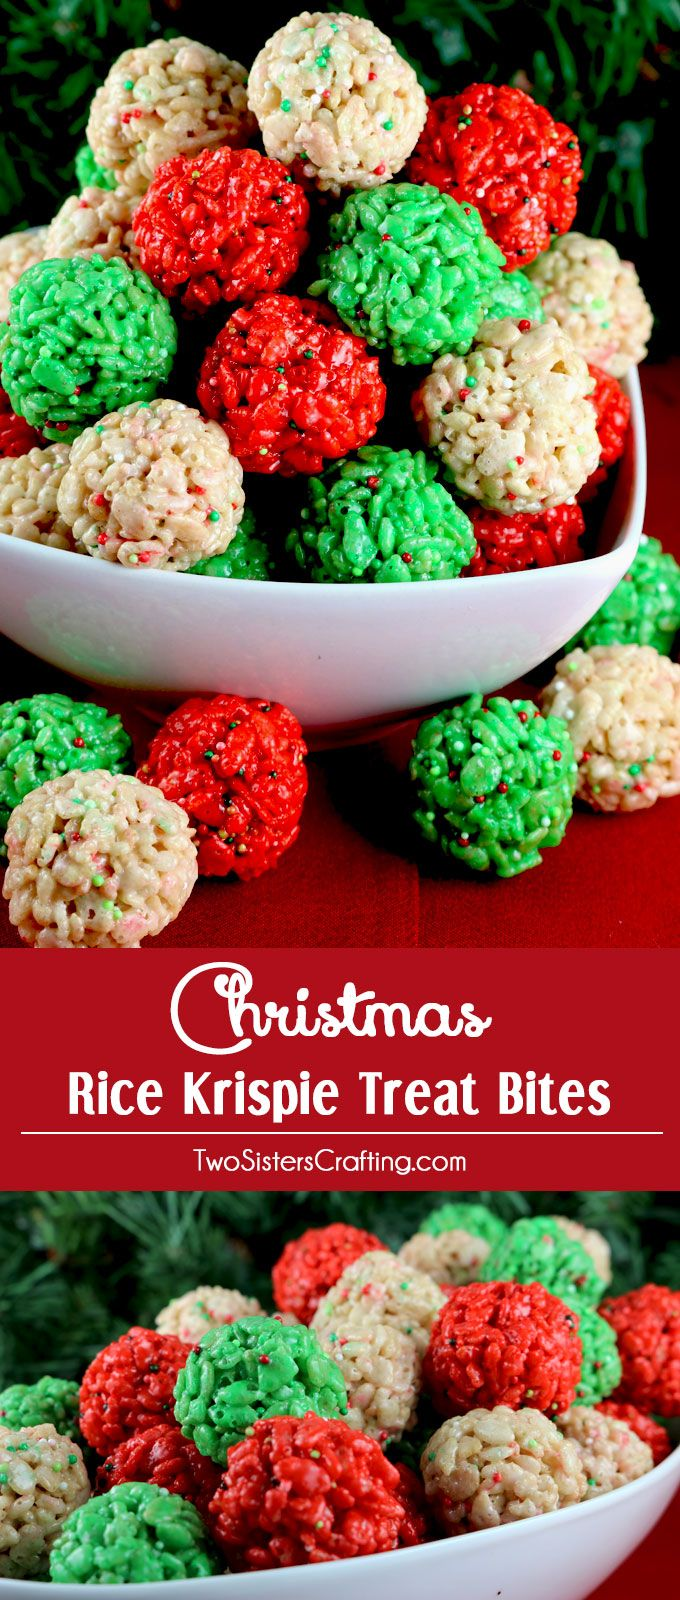 christmas rice krispie treat bites yummy bite sized balls of crunchy marshmallow y delight this is a christmas dessert that is easy to make and even - Christmas Rice